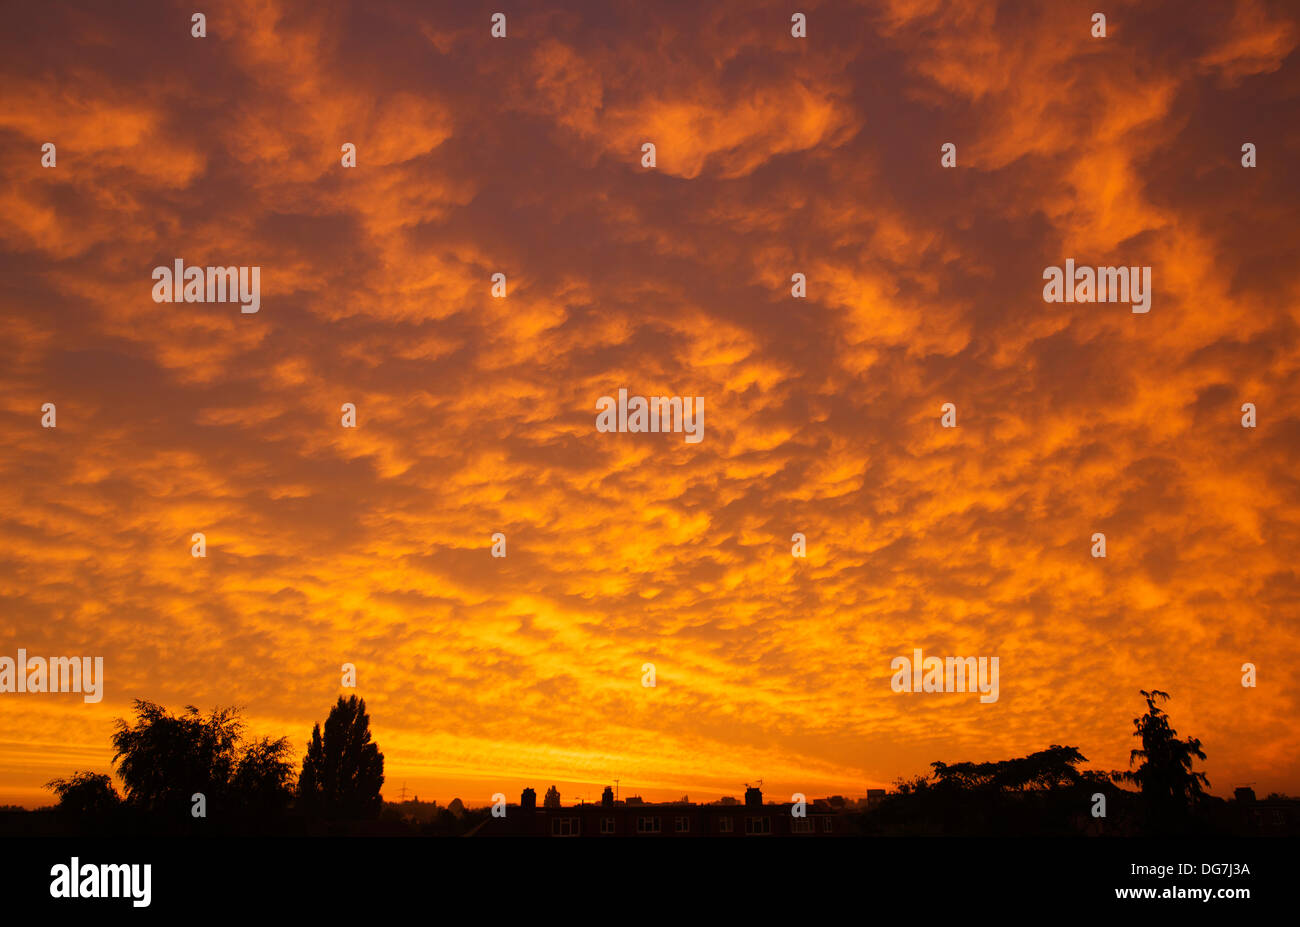 London, UK 16th Oct, 2013. A dramatic sunrise breaks over London this morning. Much of the country was expected to experience windy and wet weather by the end of the day. Credit:  Malcolm Park editorial/Alamy Live News - Stock Image